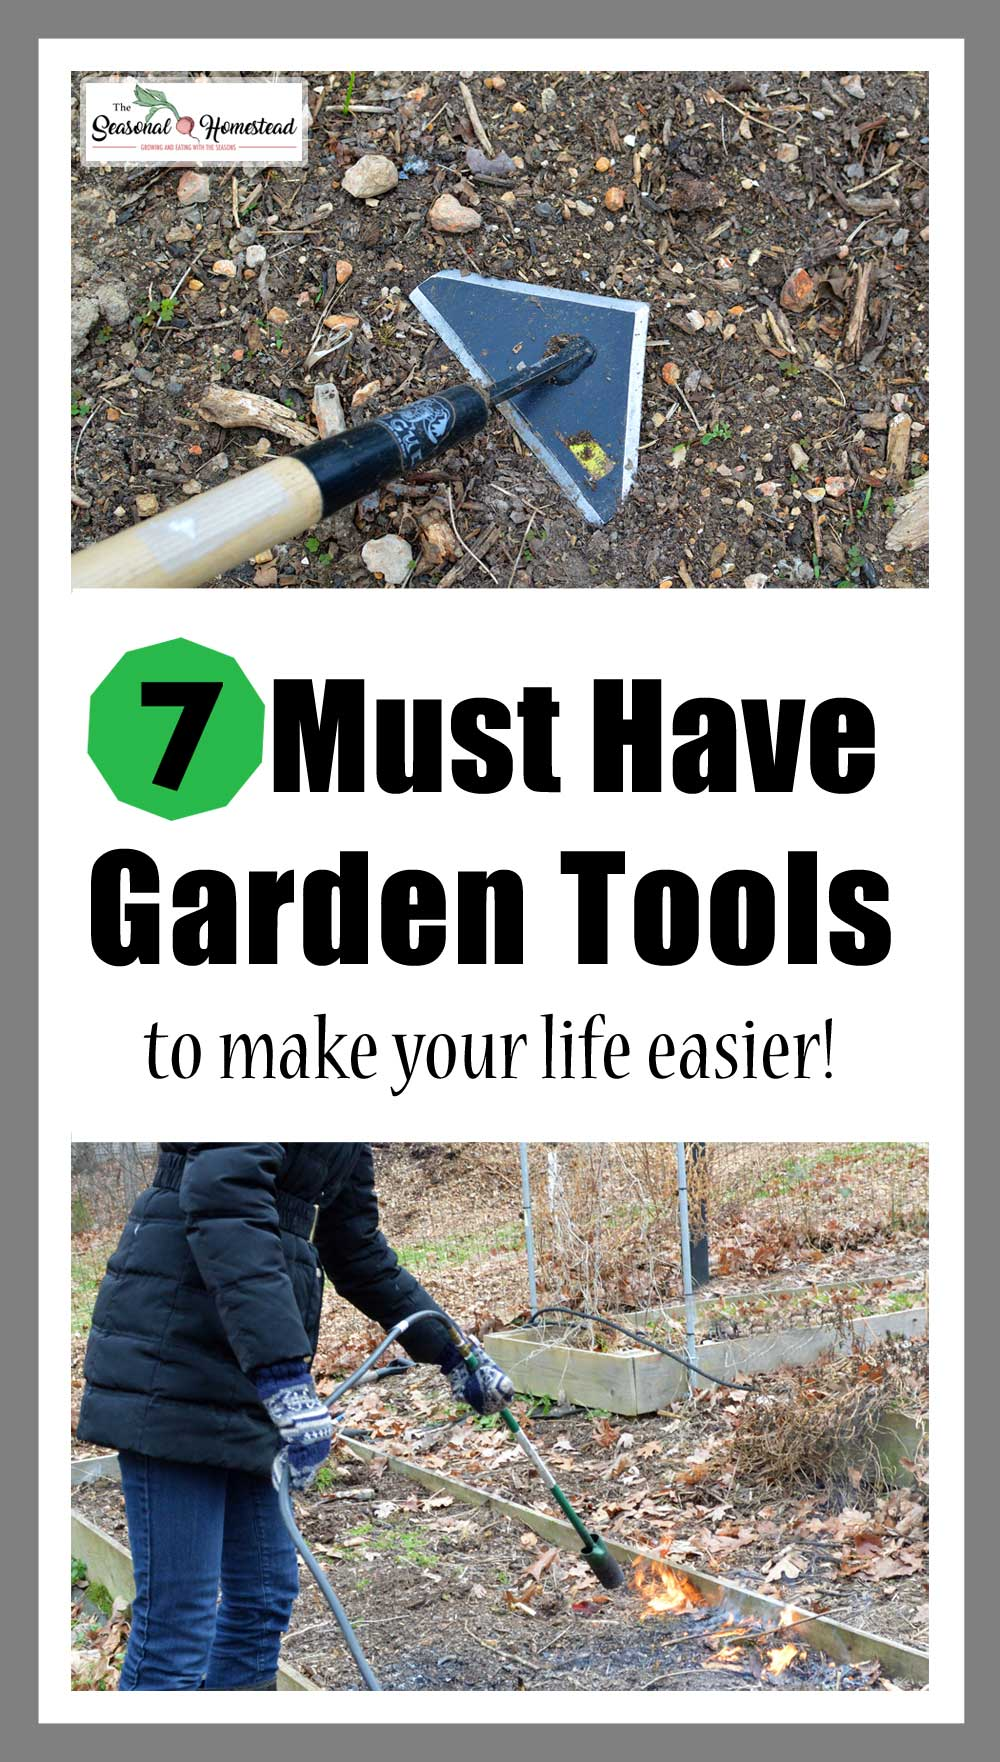 7-Must-Have-Garden-Tools-to-Make-Your-Life-Easier.jpg